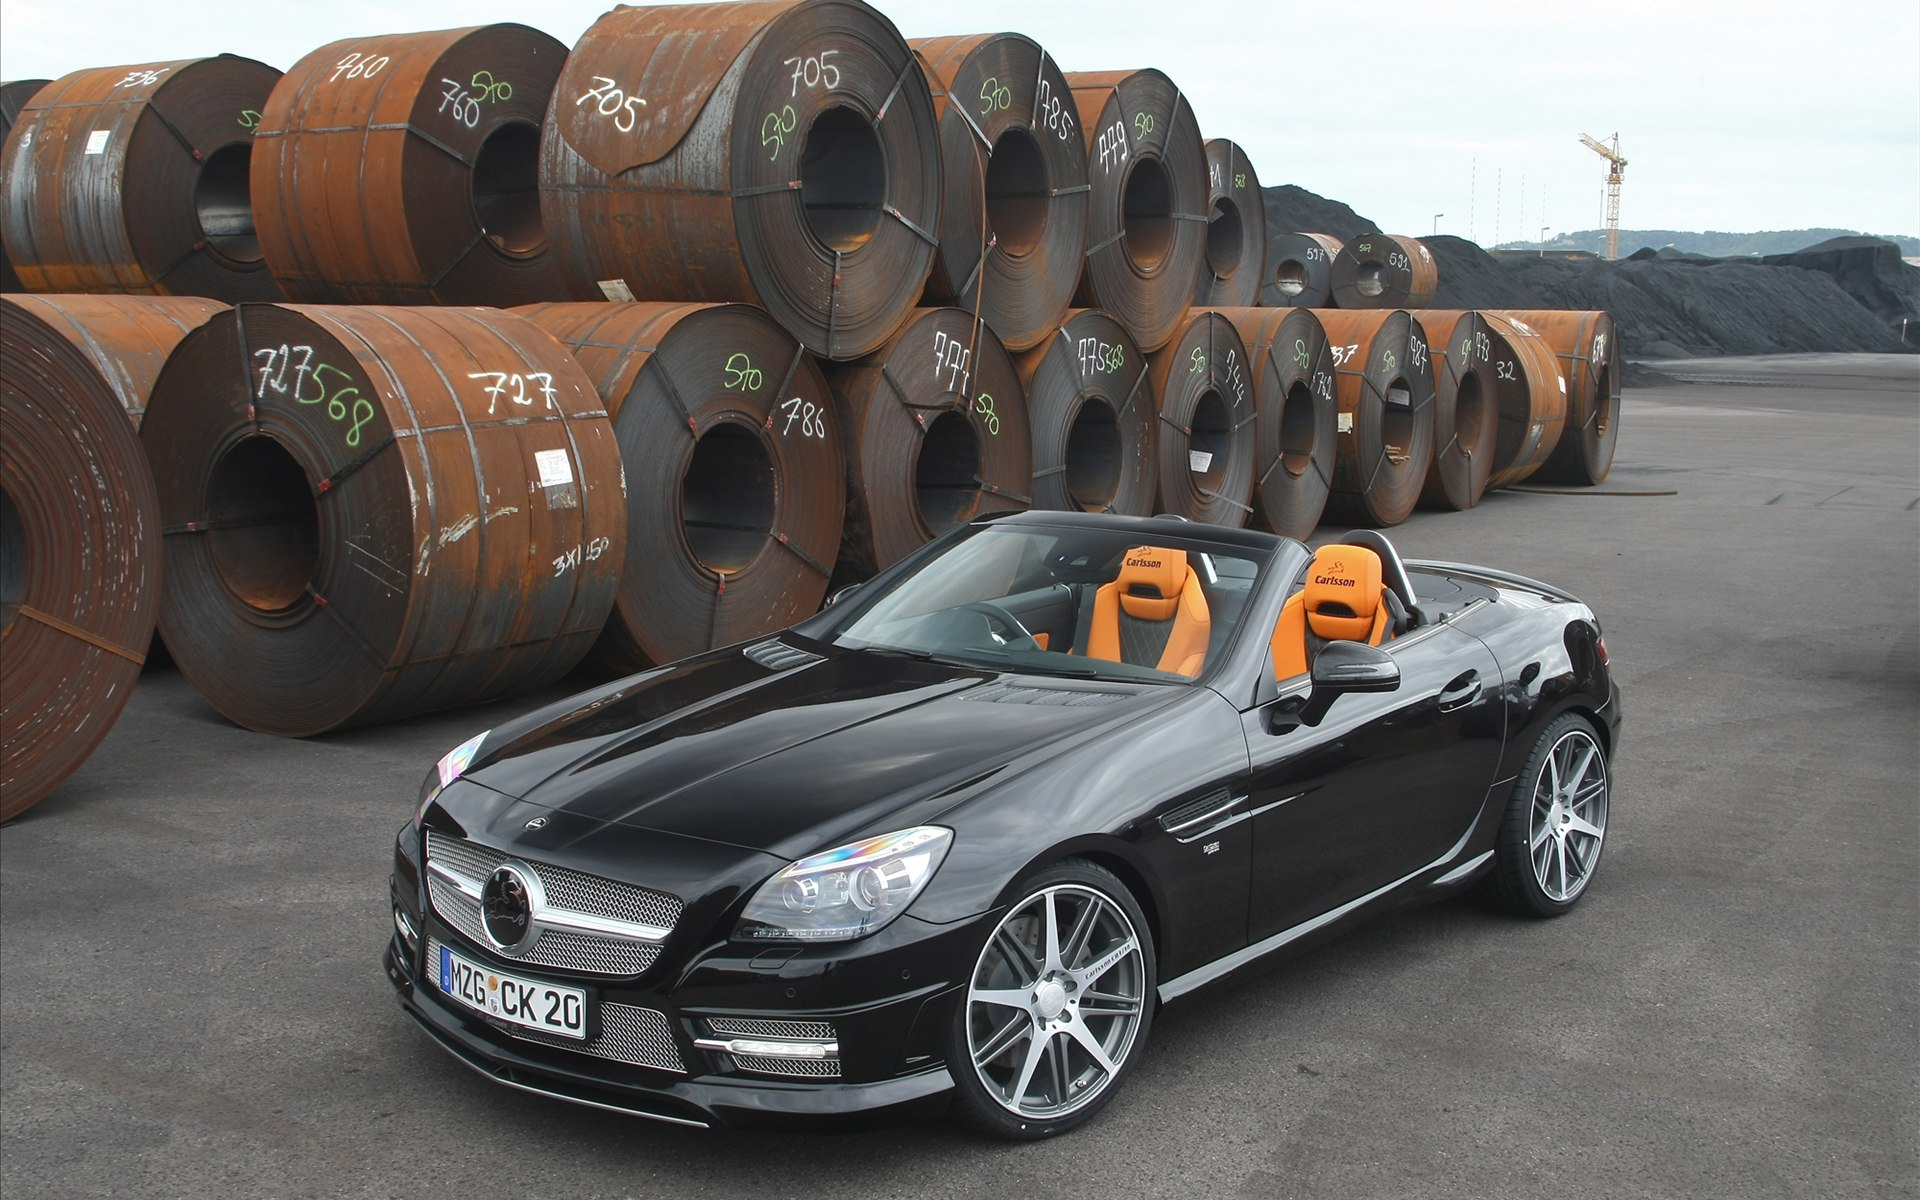 Mercedes Benz SLK 2011 Wallpaper | HD Car Wallpapers | ID ...